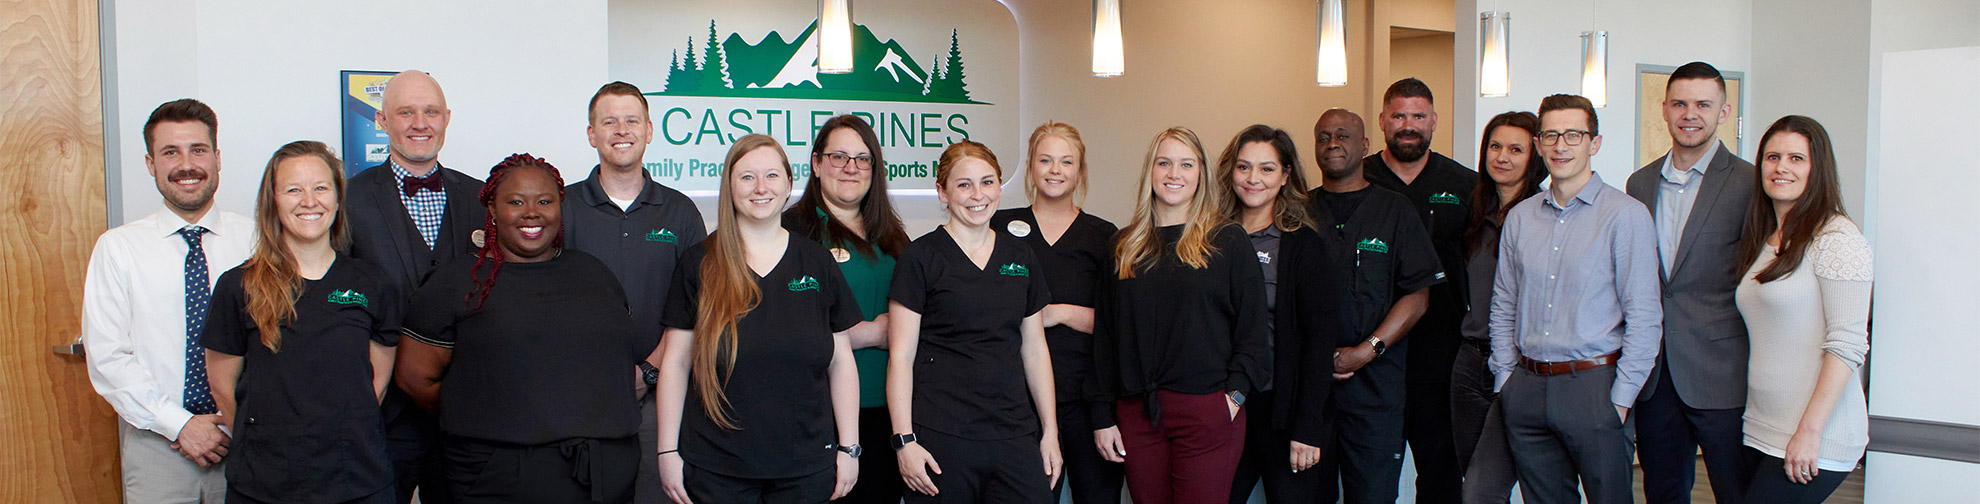 Castle Pines Family Practice and Urgent Care Group Photo